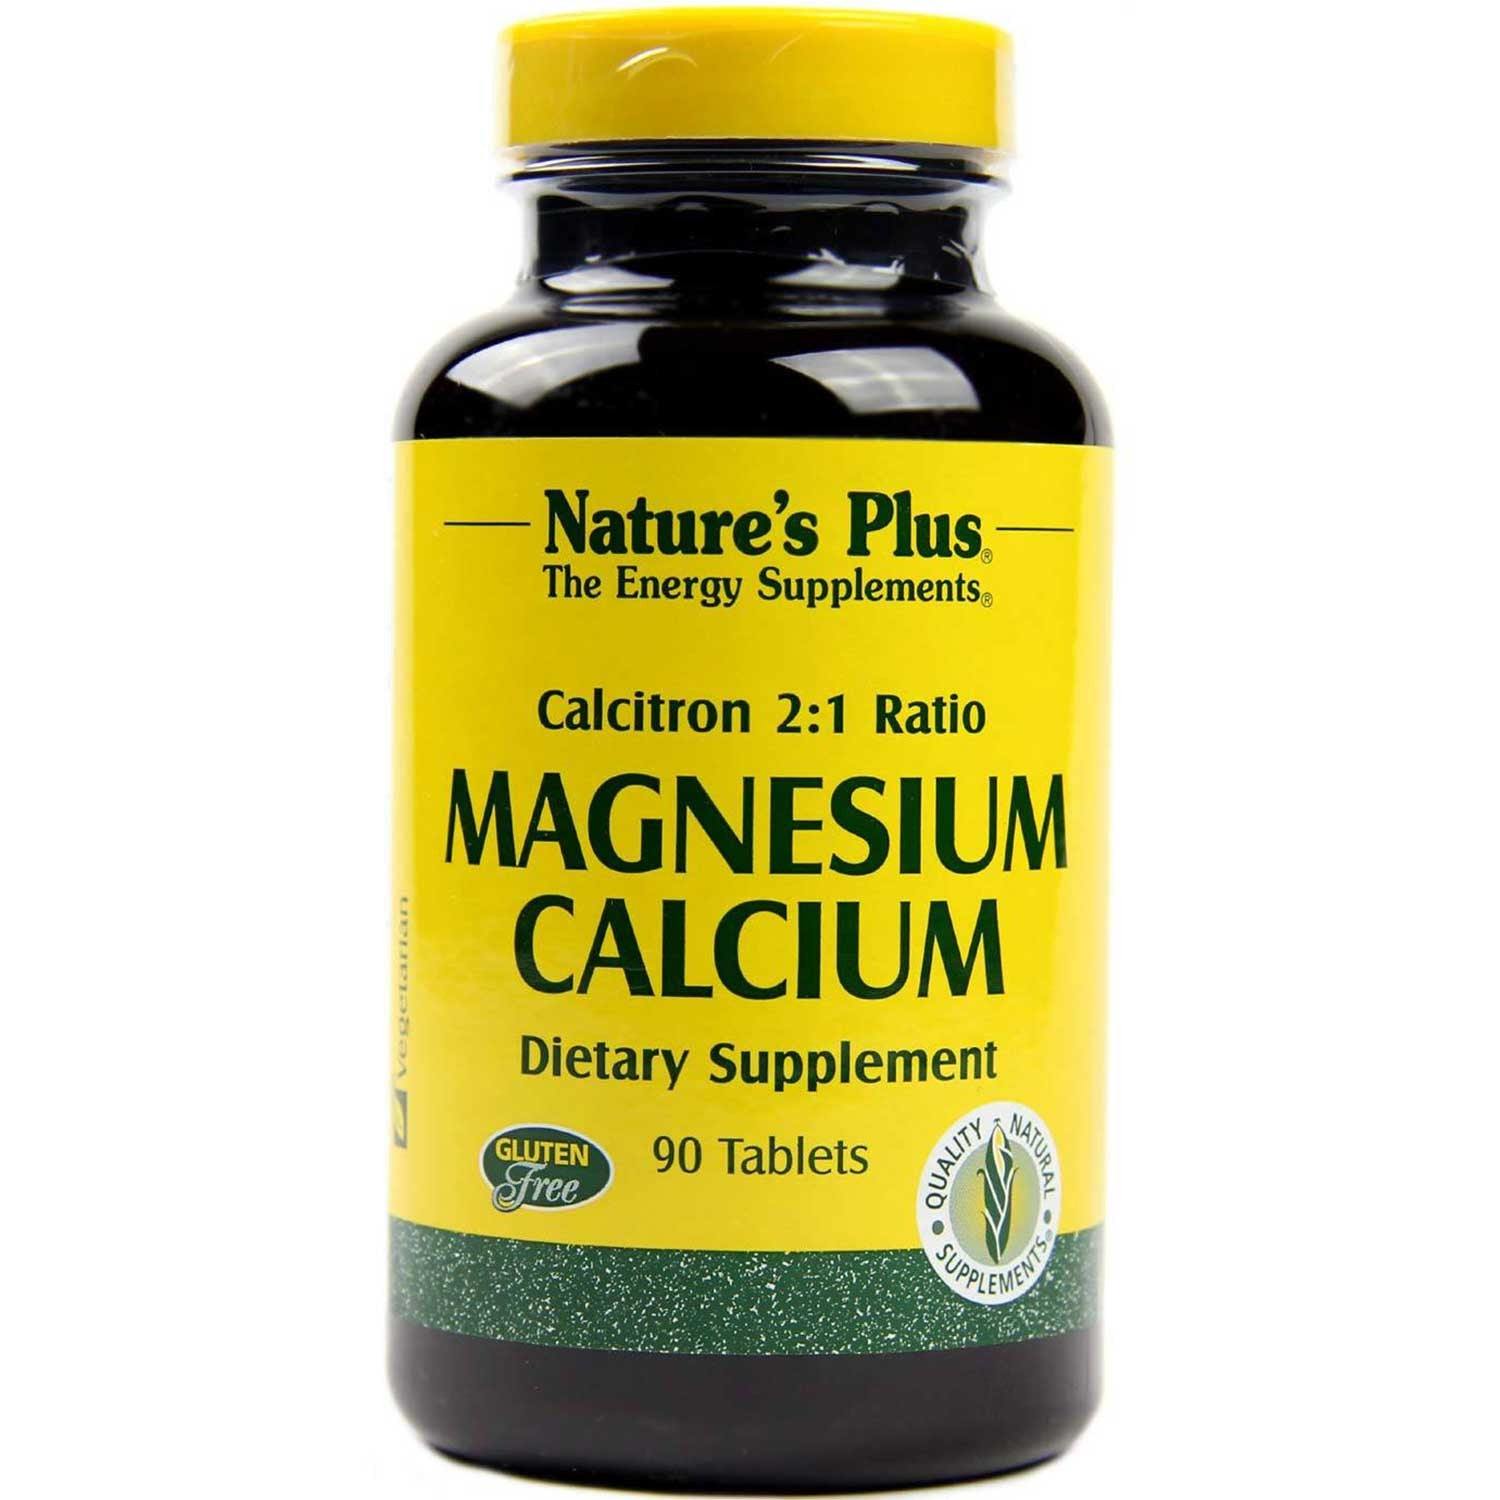 Natures Plus Calcitron 2:1 Ration Magnesium/Calcium, 90 tabs.-NaturesWisdom